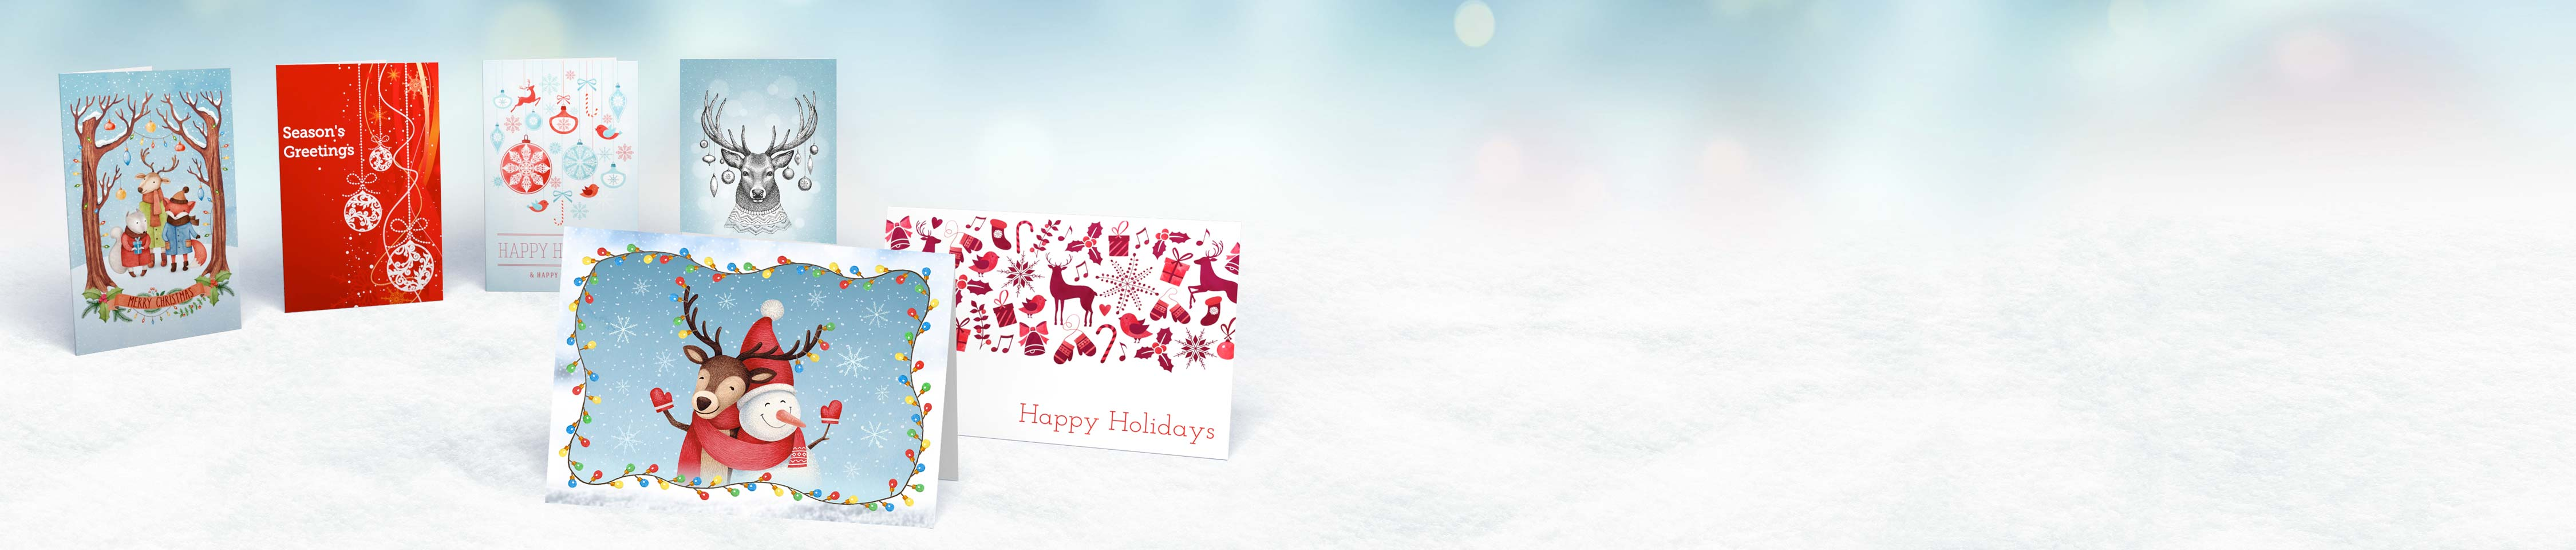 Custom Printed Greeting Cards - Design Your Christmas cards online